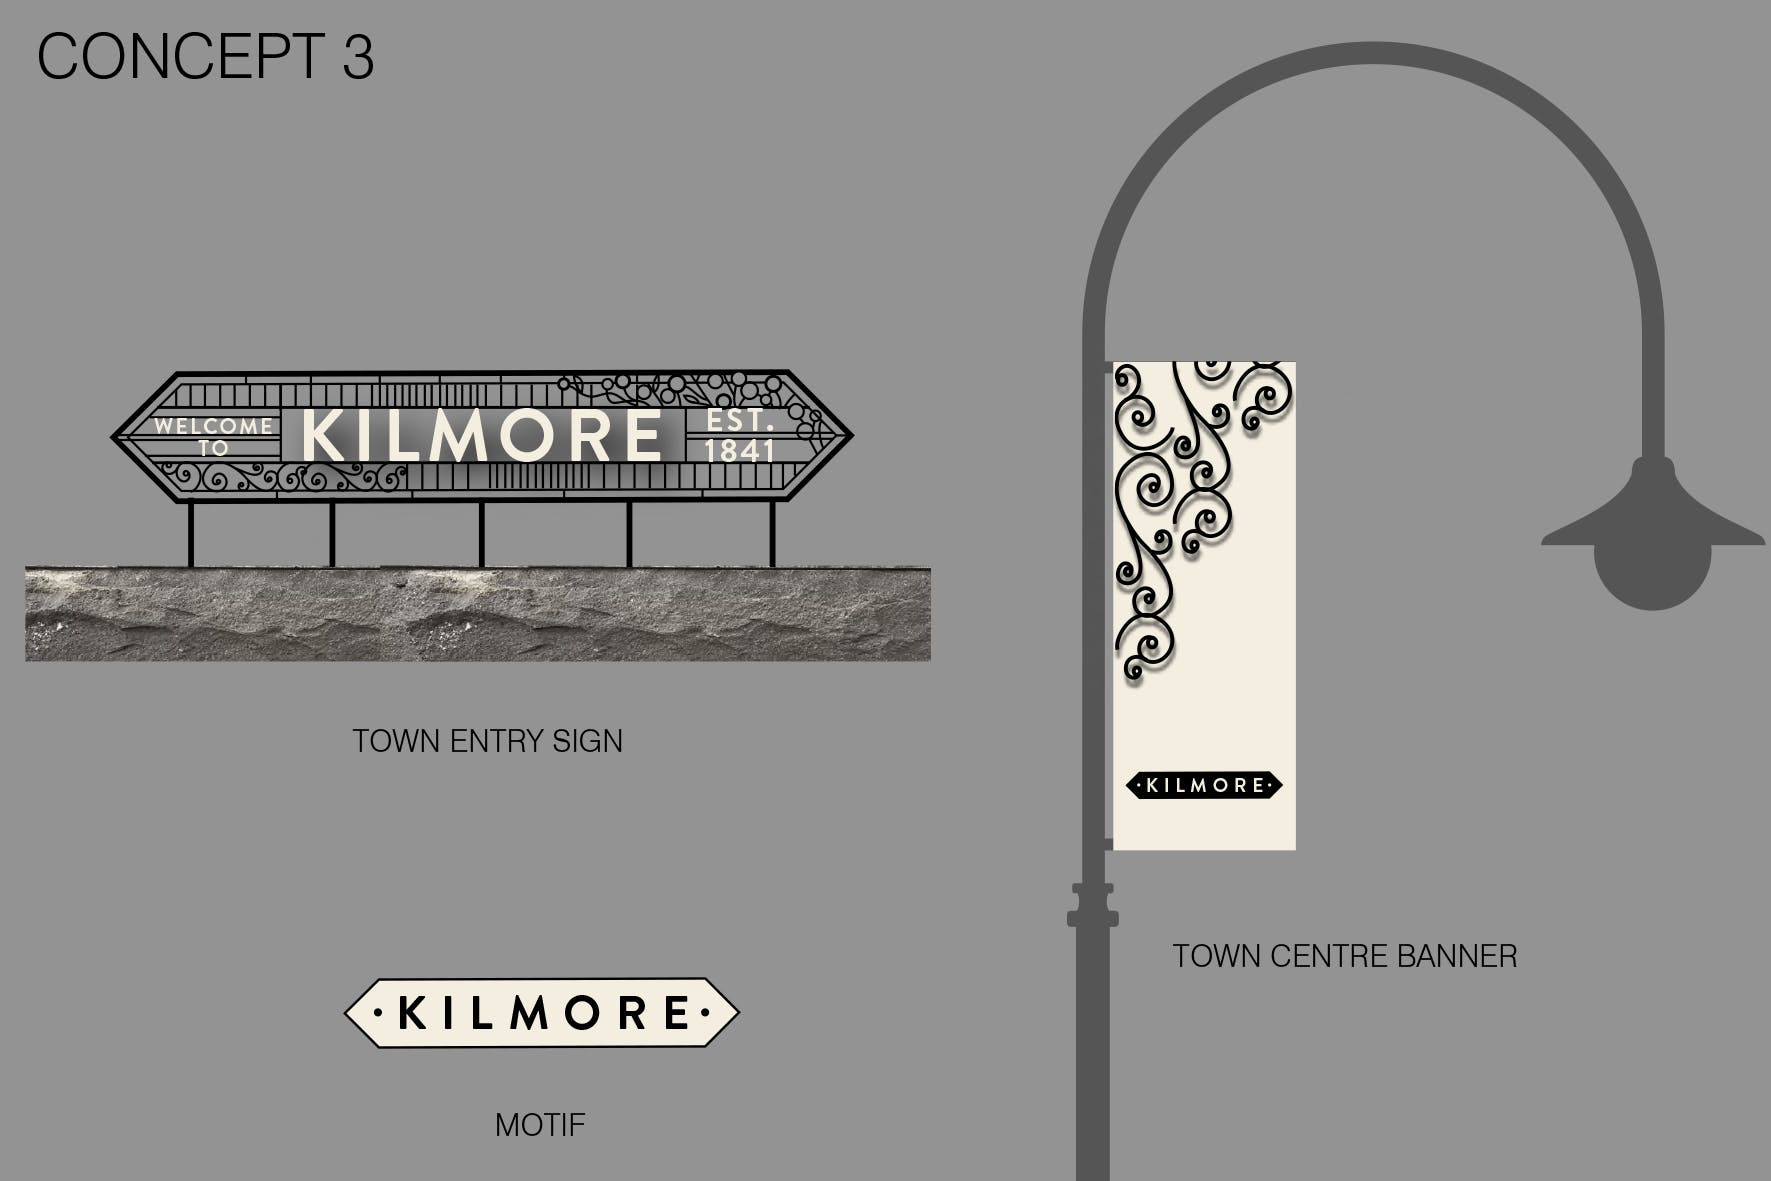 Town entry, motif and banners decorative